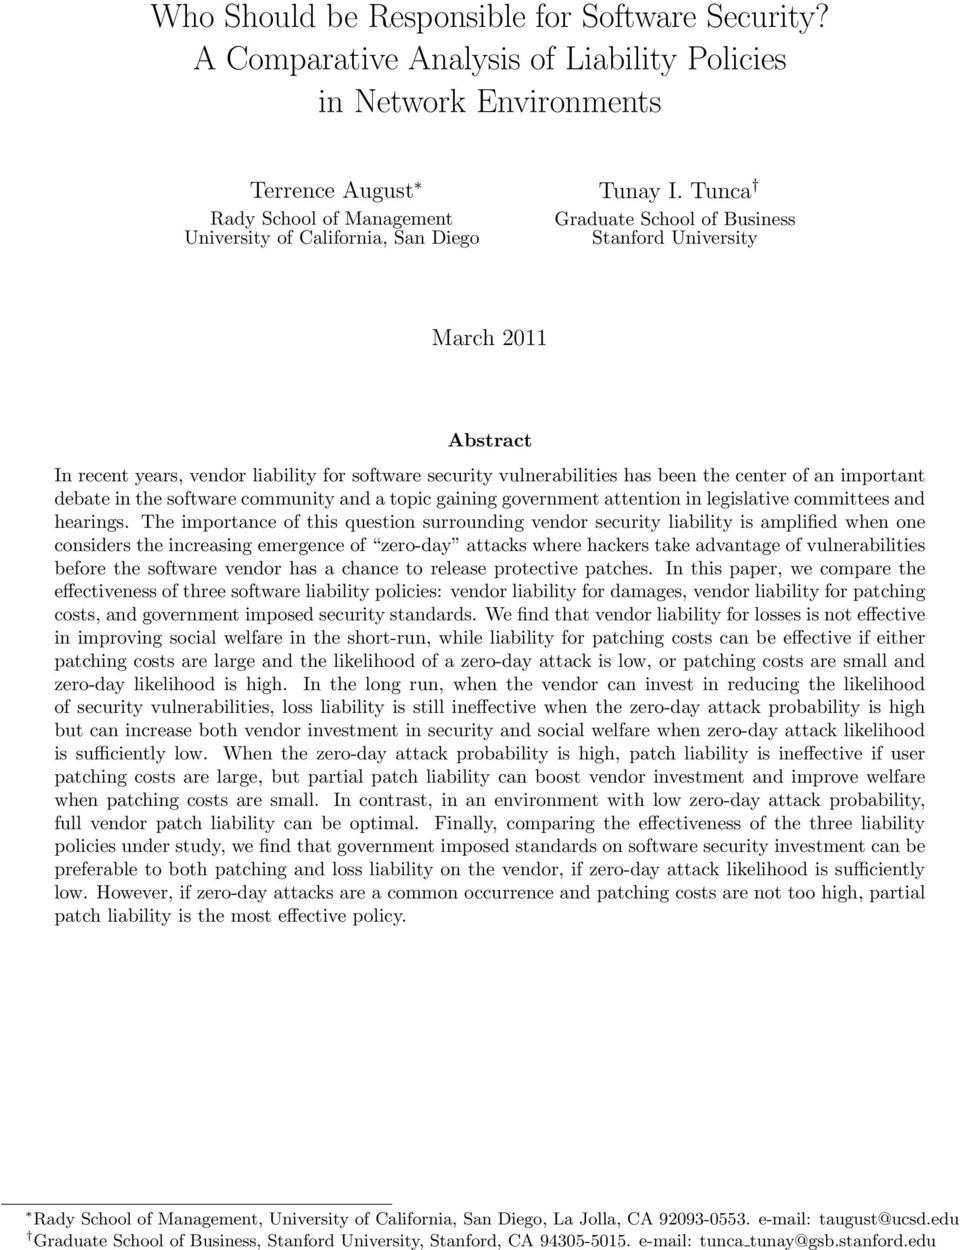 Tunca Graduate School of Business Stanford University March 20 Abstract In recent years, vendor liability for software security vulnerabilities has been the center of an important debate in the